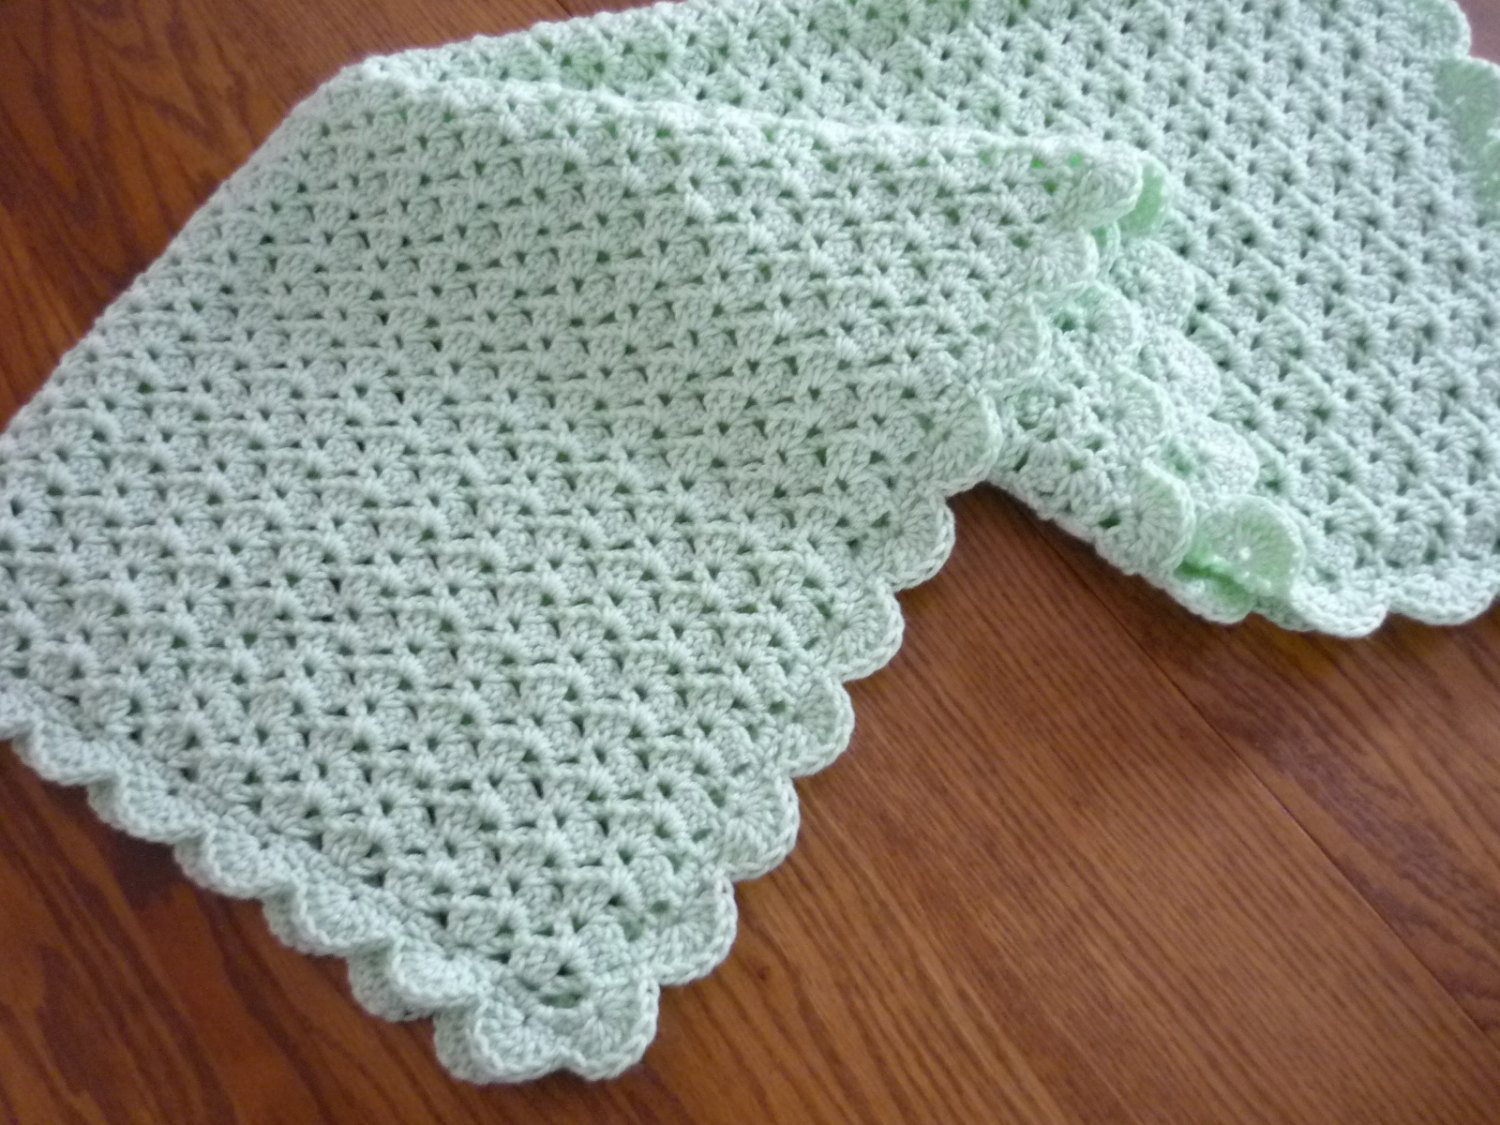 Awesome Crochet Baby Blanket Shell Stitch Crochet Crib Size Afghan Shell Baby Blanket Of Superb 42 Images Shell Baby Blanket